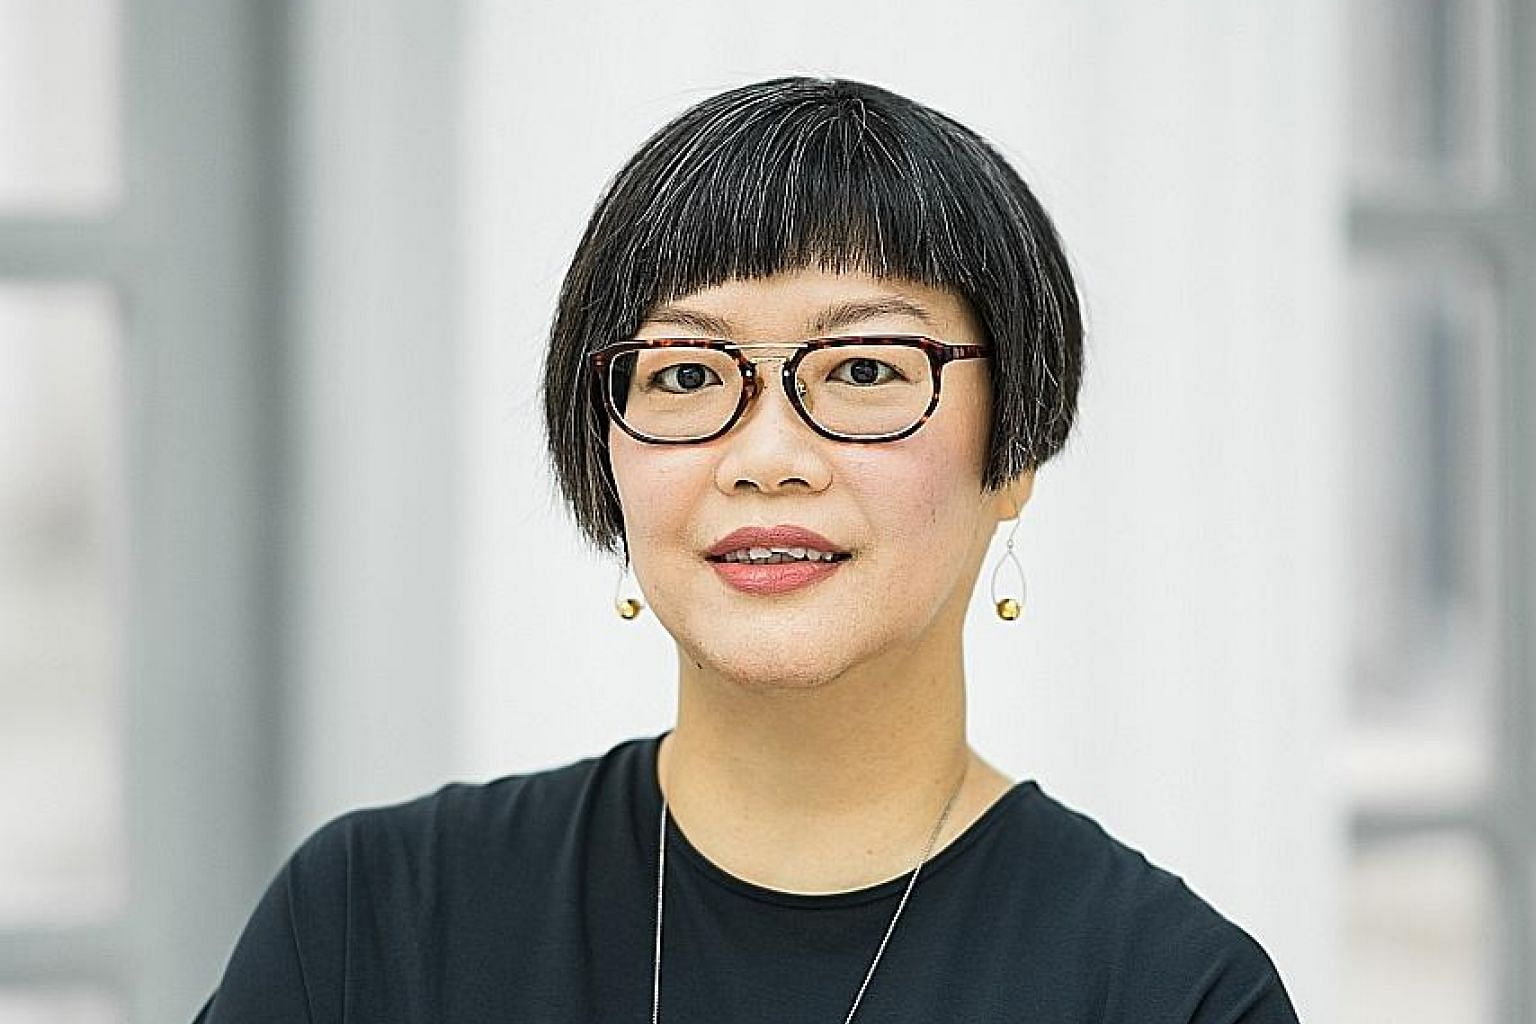 Ms Chung May Khuen (above) will take over from Ms Angelita Teo as director of the museum from Sept 20.